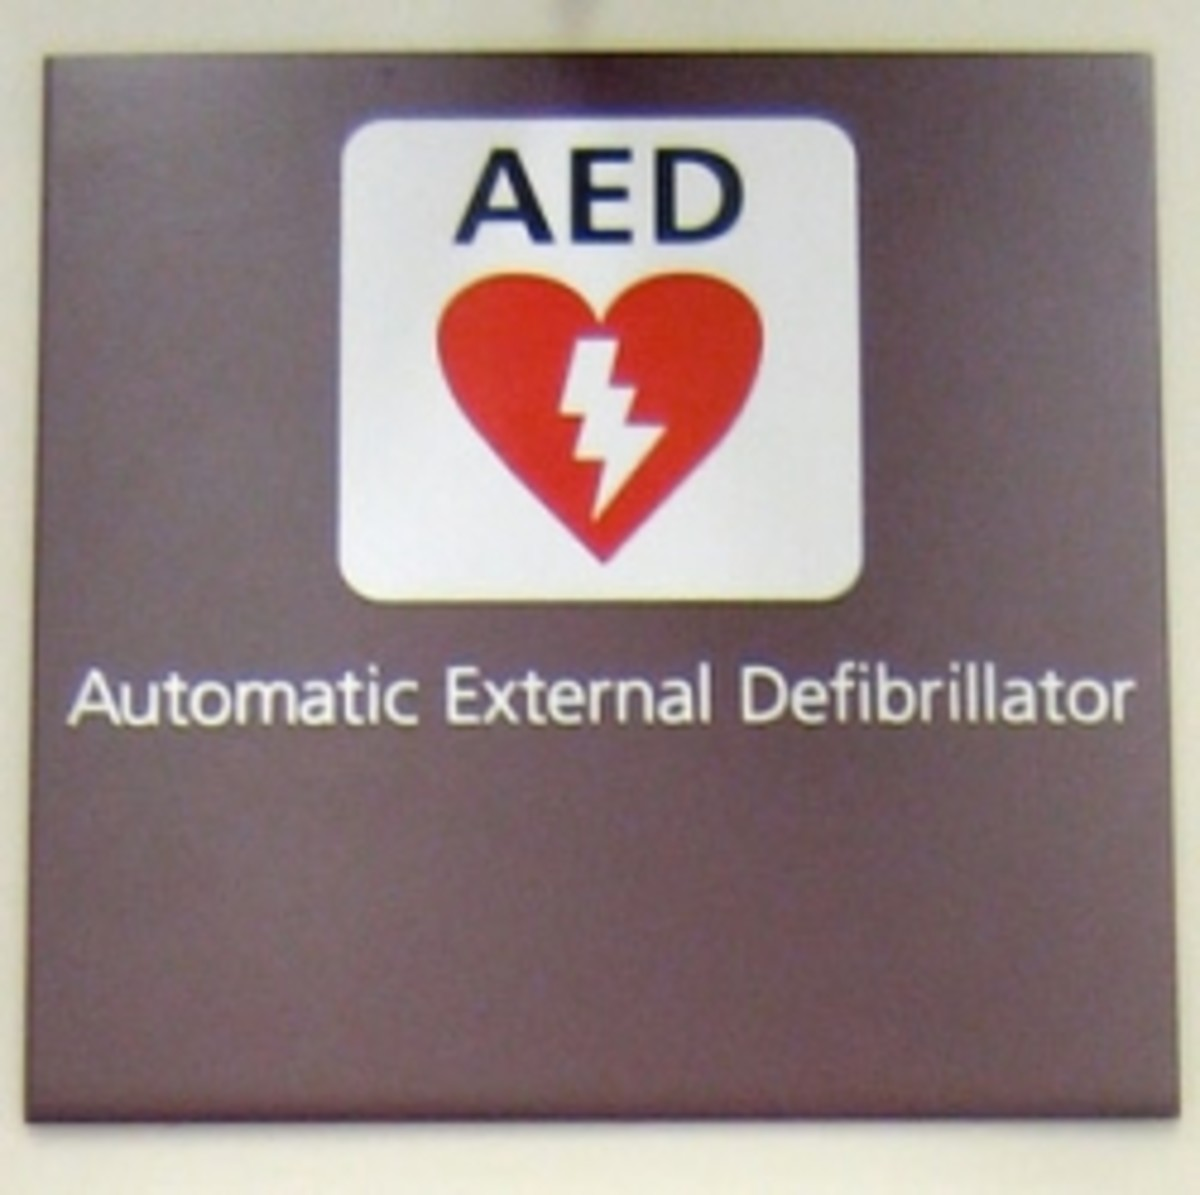 How Does a Defibrillator Work